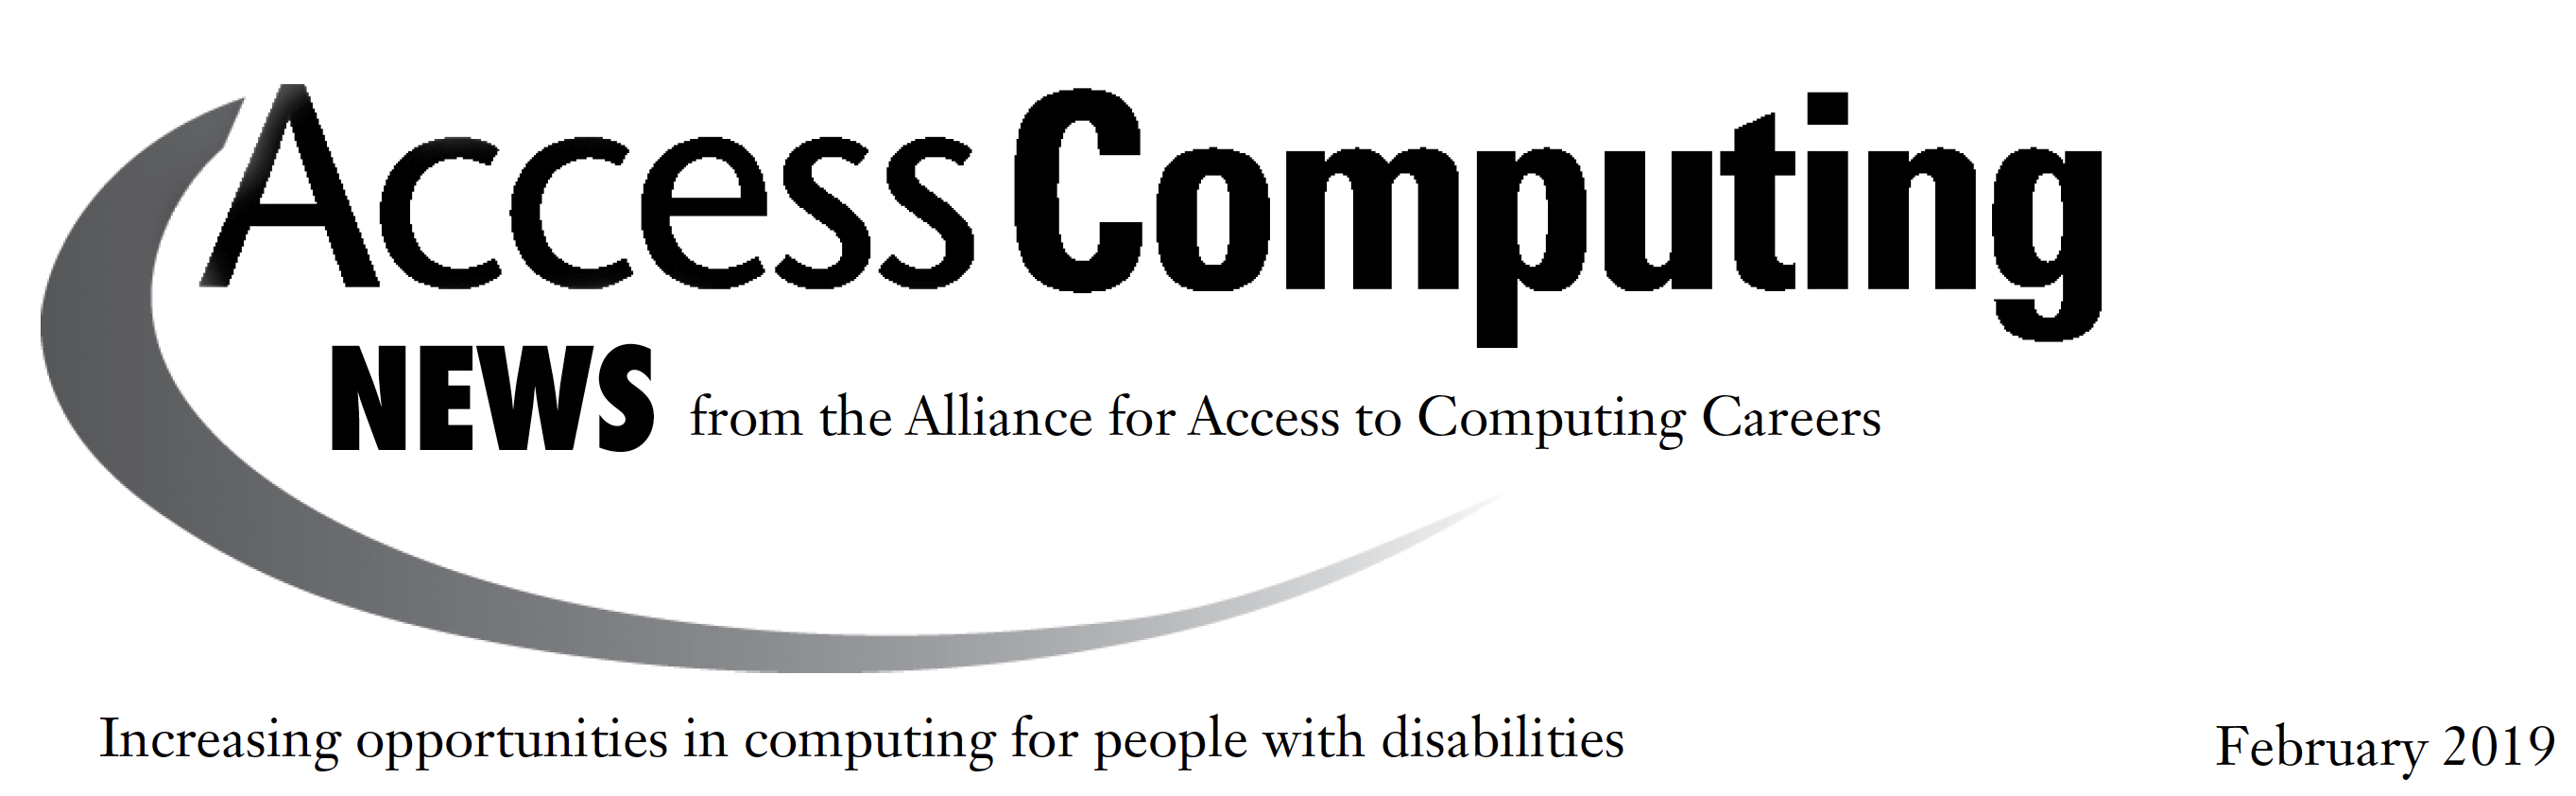 AccessComputing News Feb19 Header